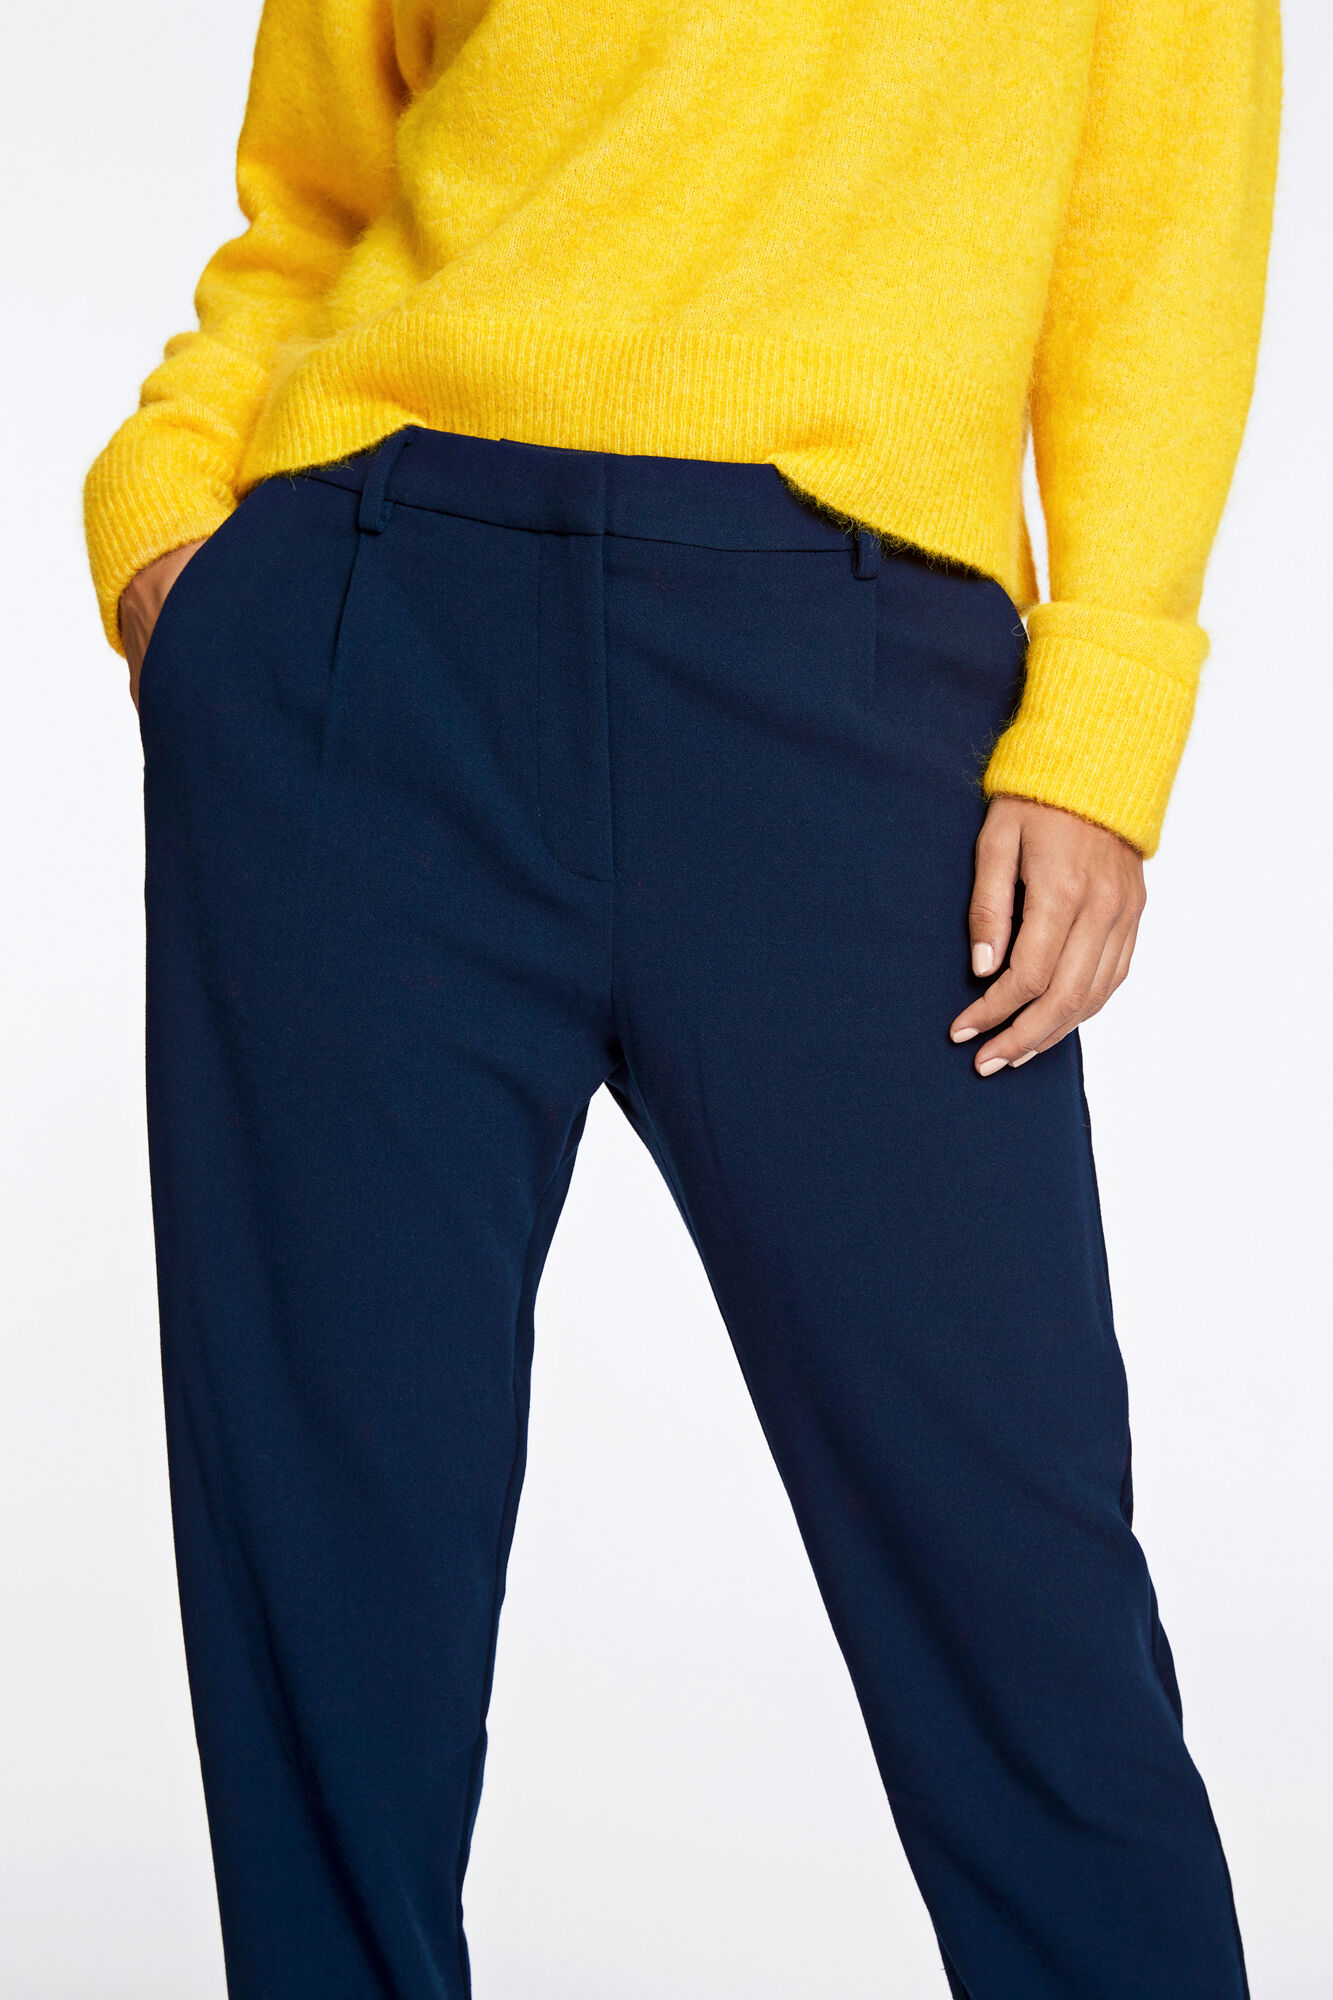 Stamford pants 2566, TOTAL ECLIPSE